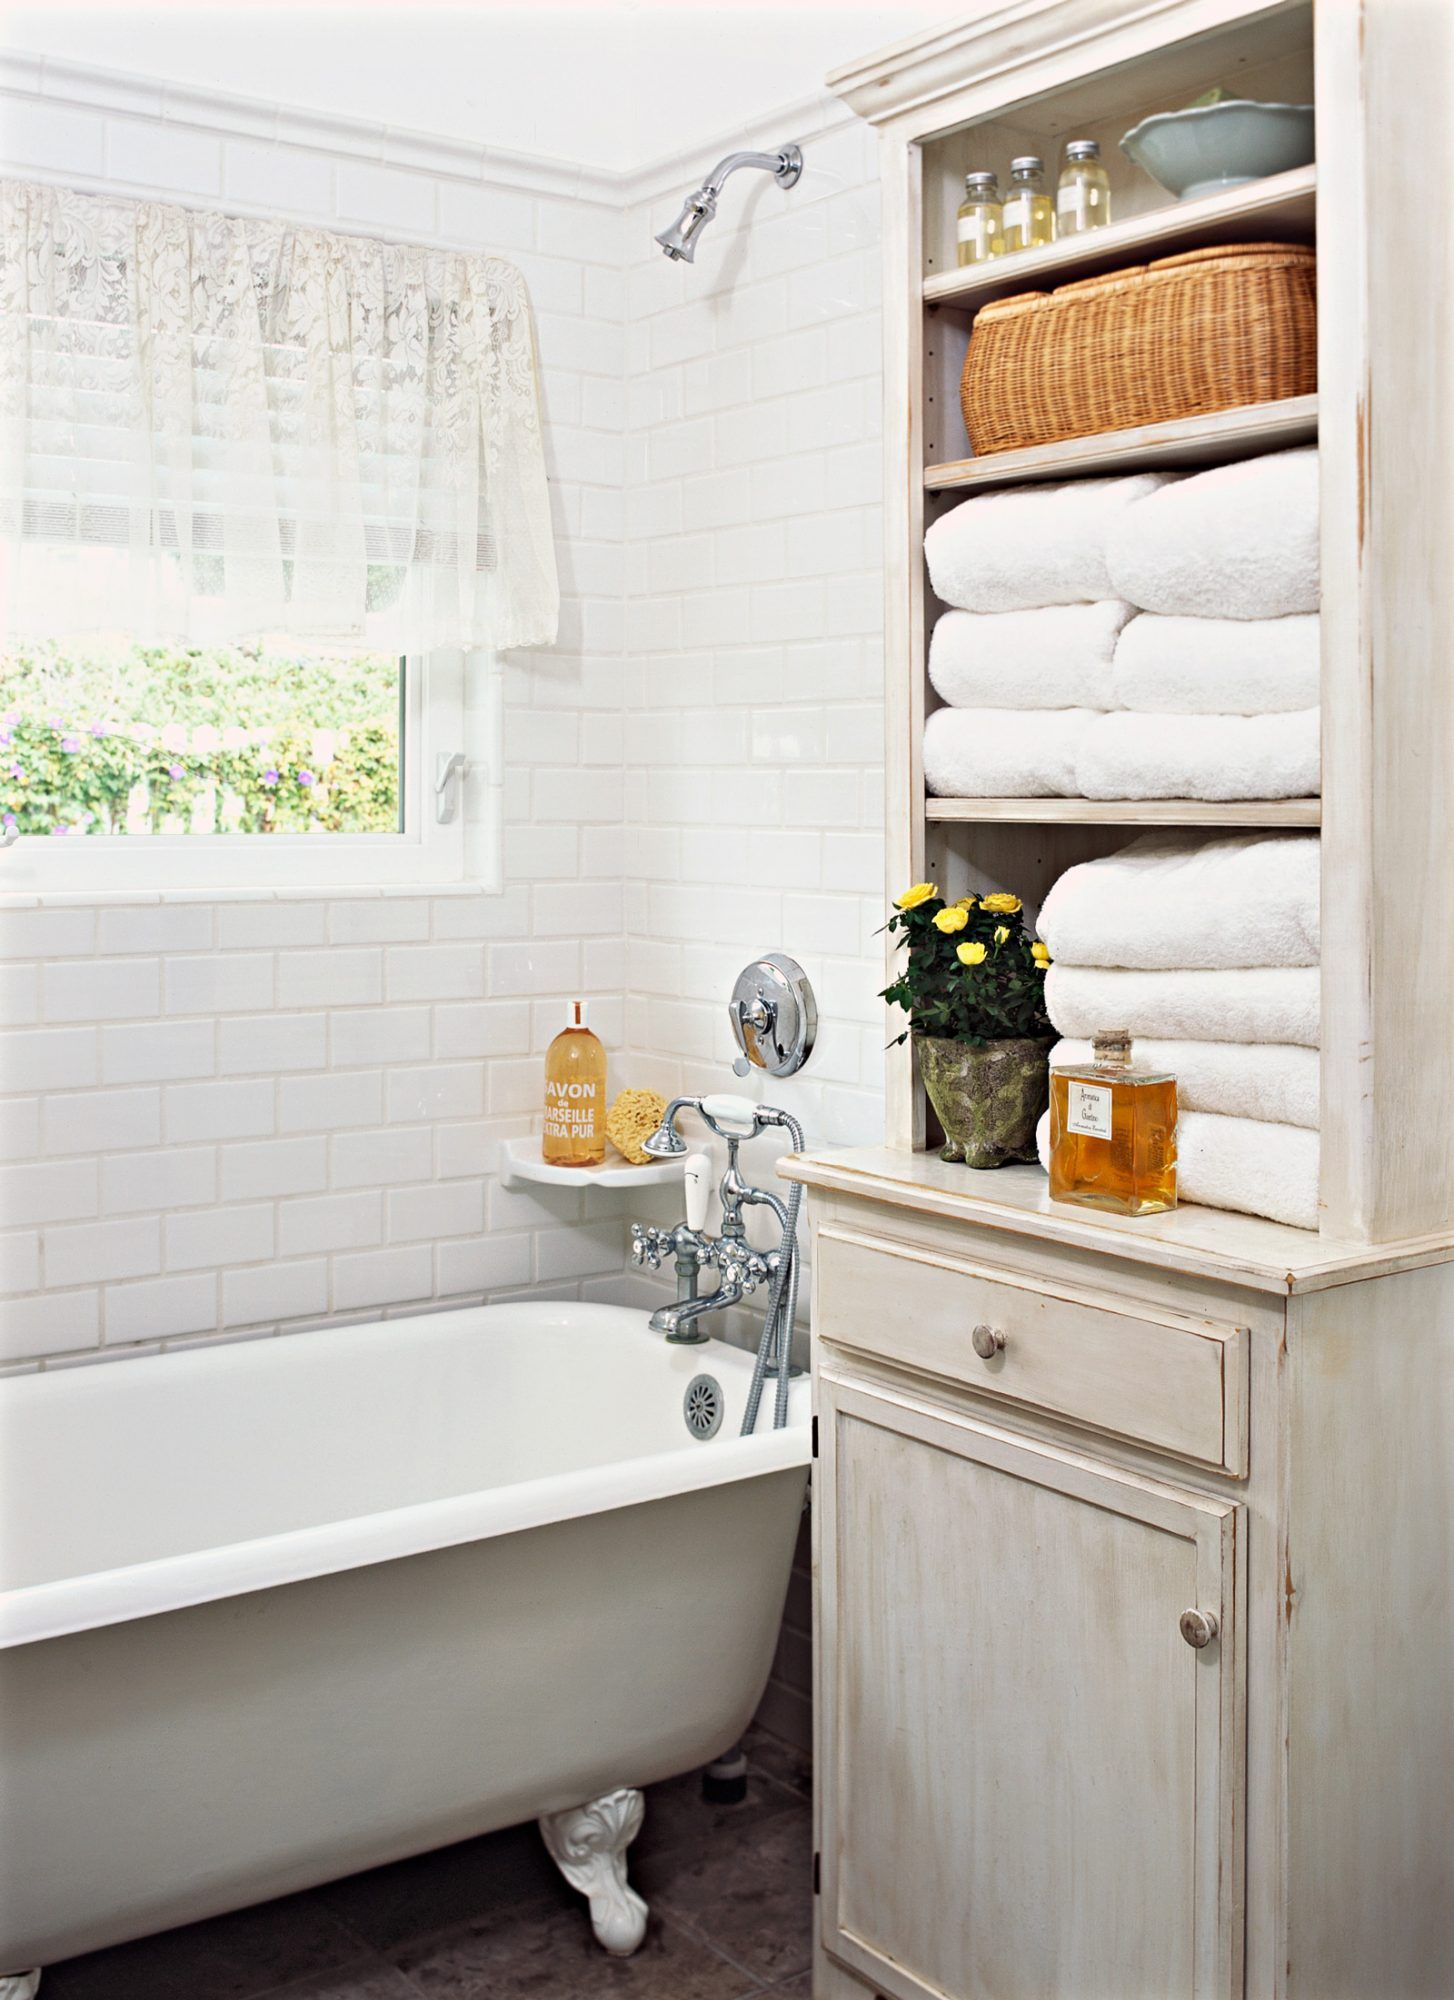 11 Towel Display Ideas for Pretty (and Practical) Bathroom Storage